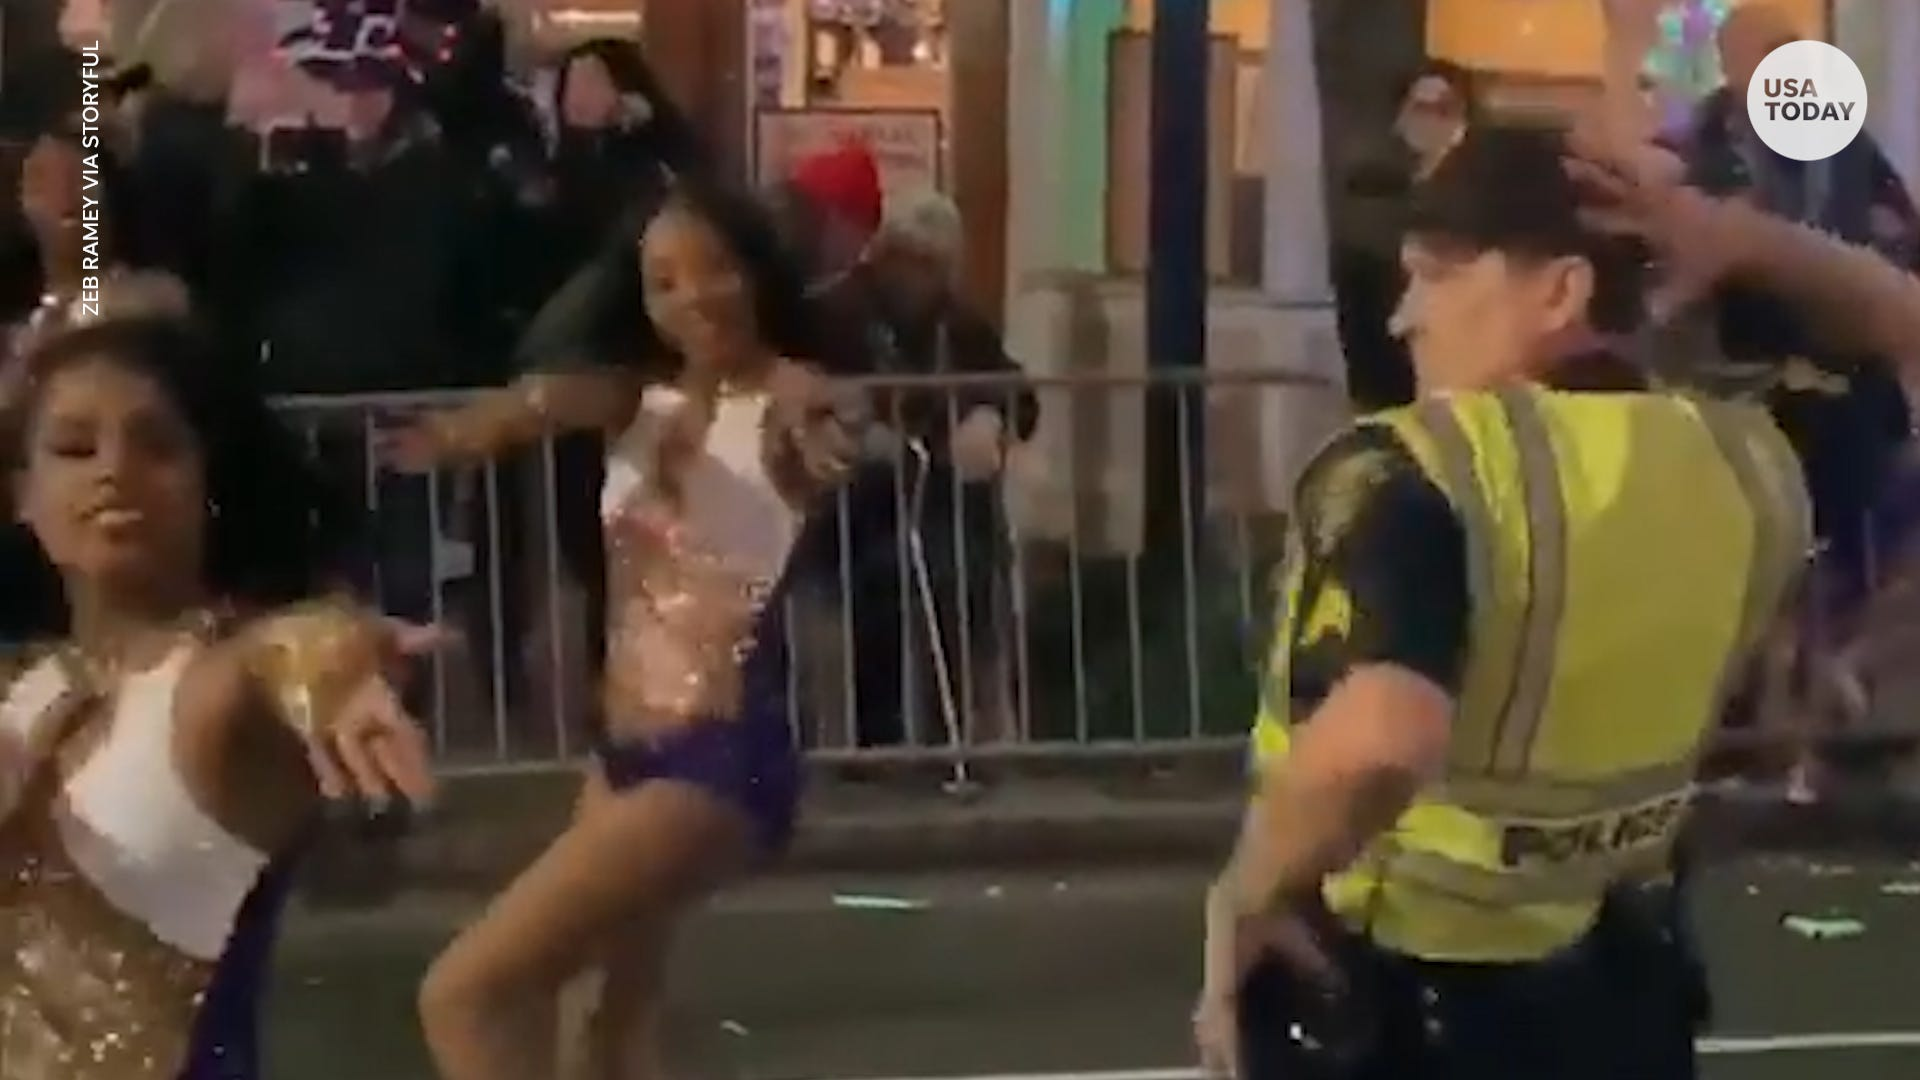 Cop busts a move with dancers during Mardi Gras parade in Alabama